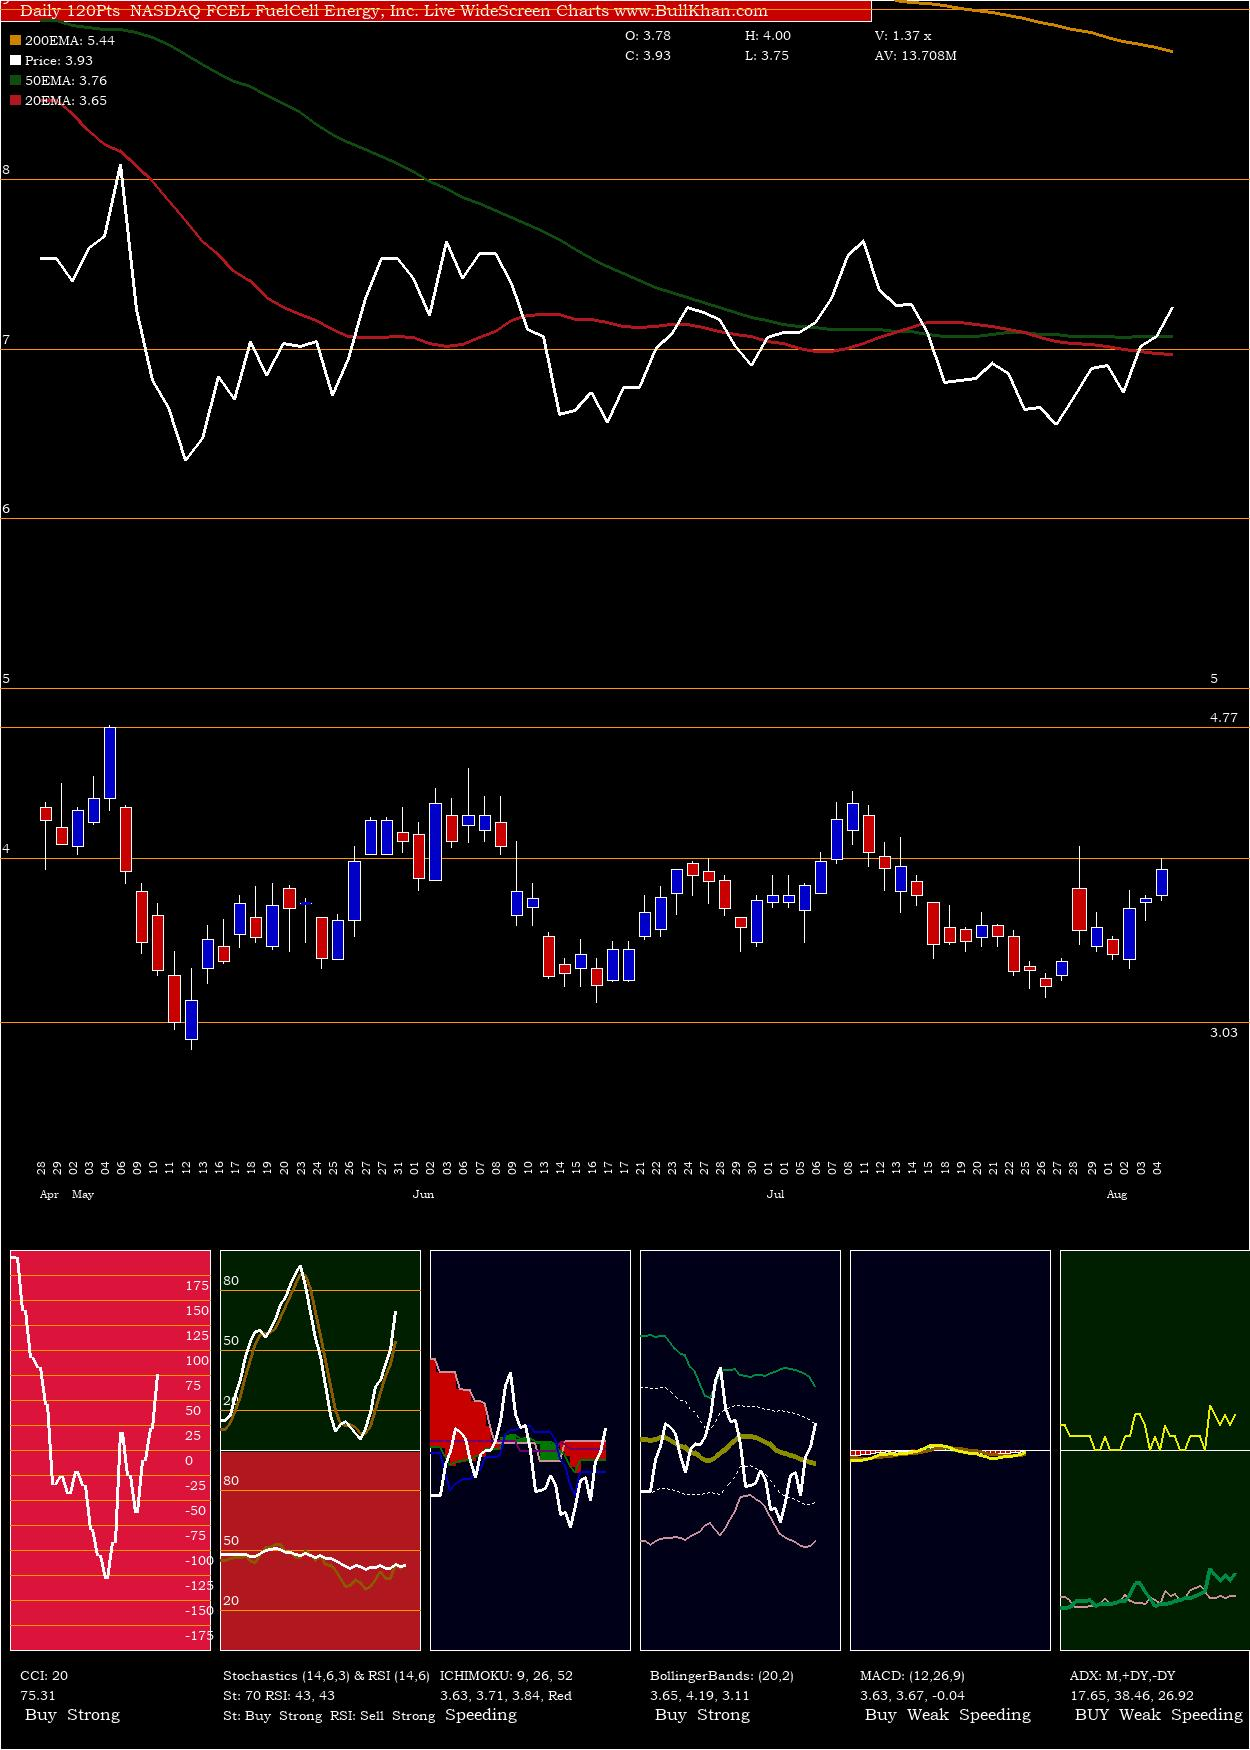 FuelCell Energy, Inc. charts and indicators